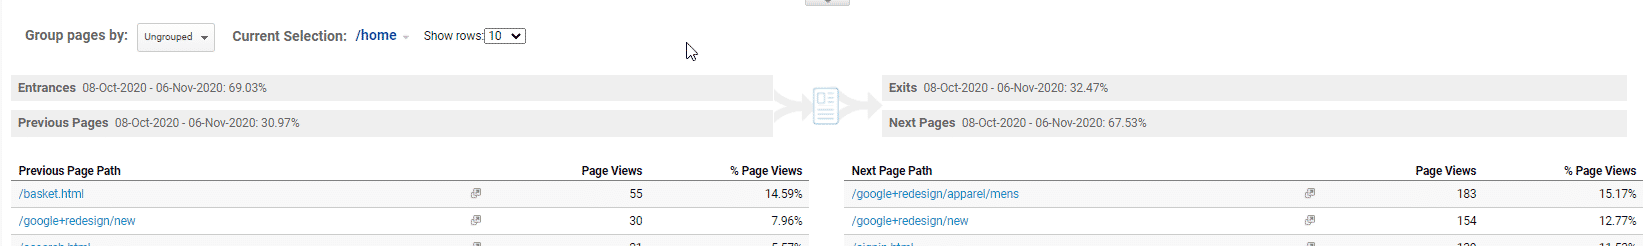 Image showing the previous and next page for page views in Google Analytics